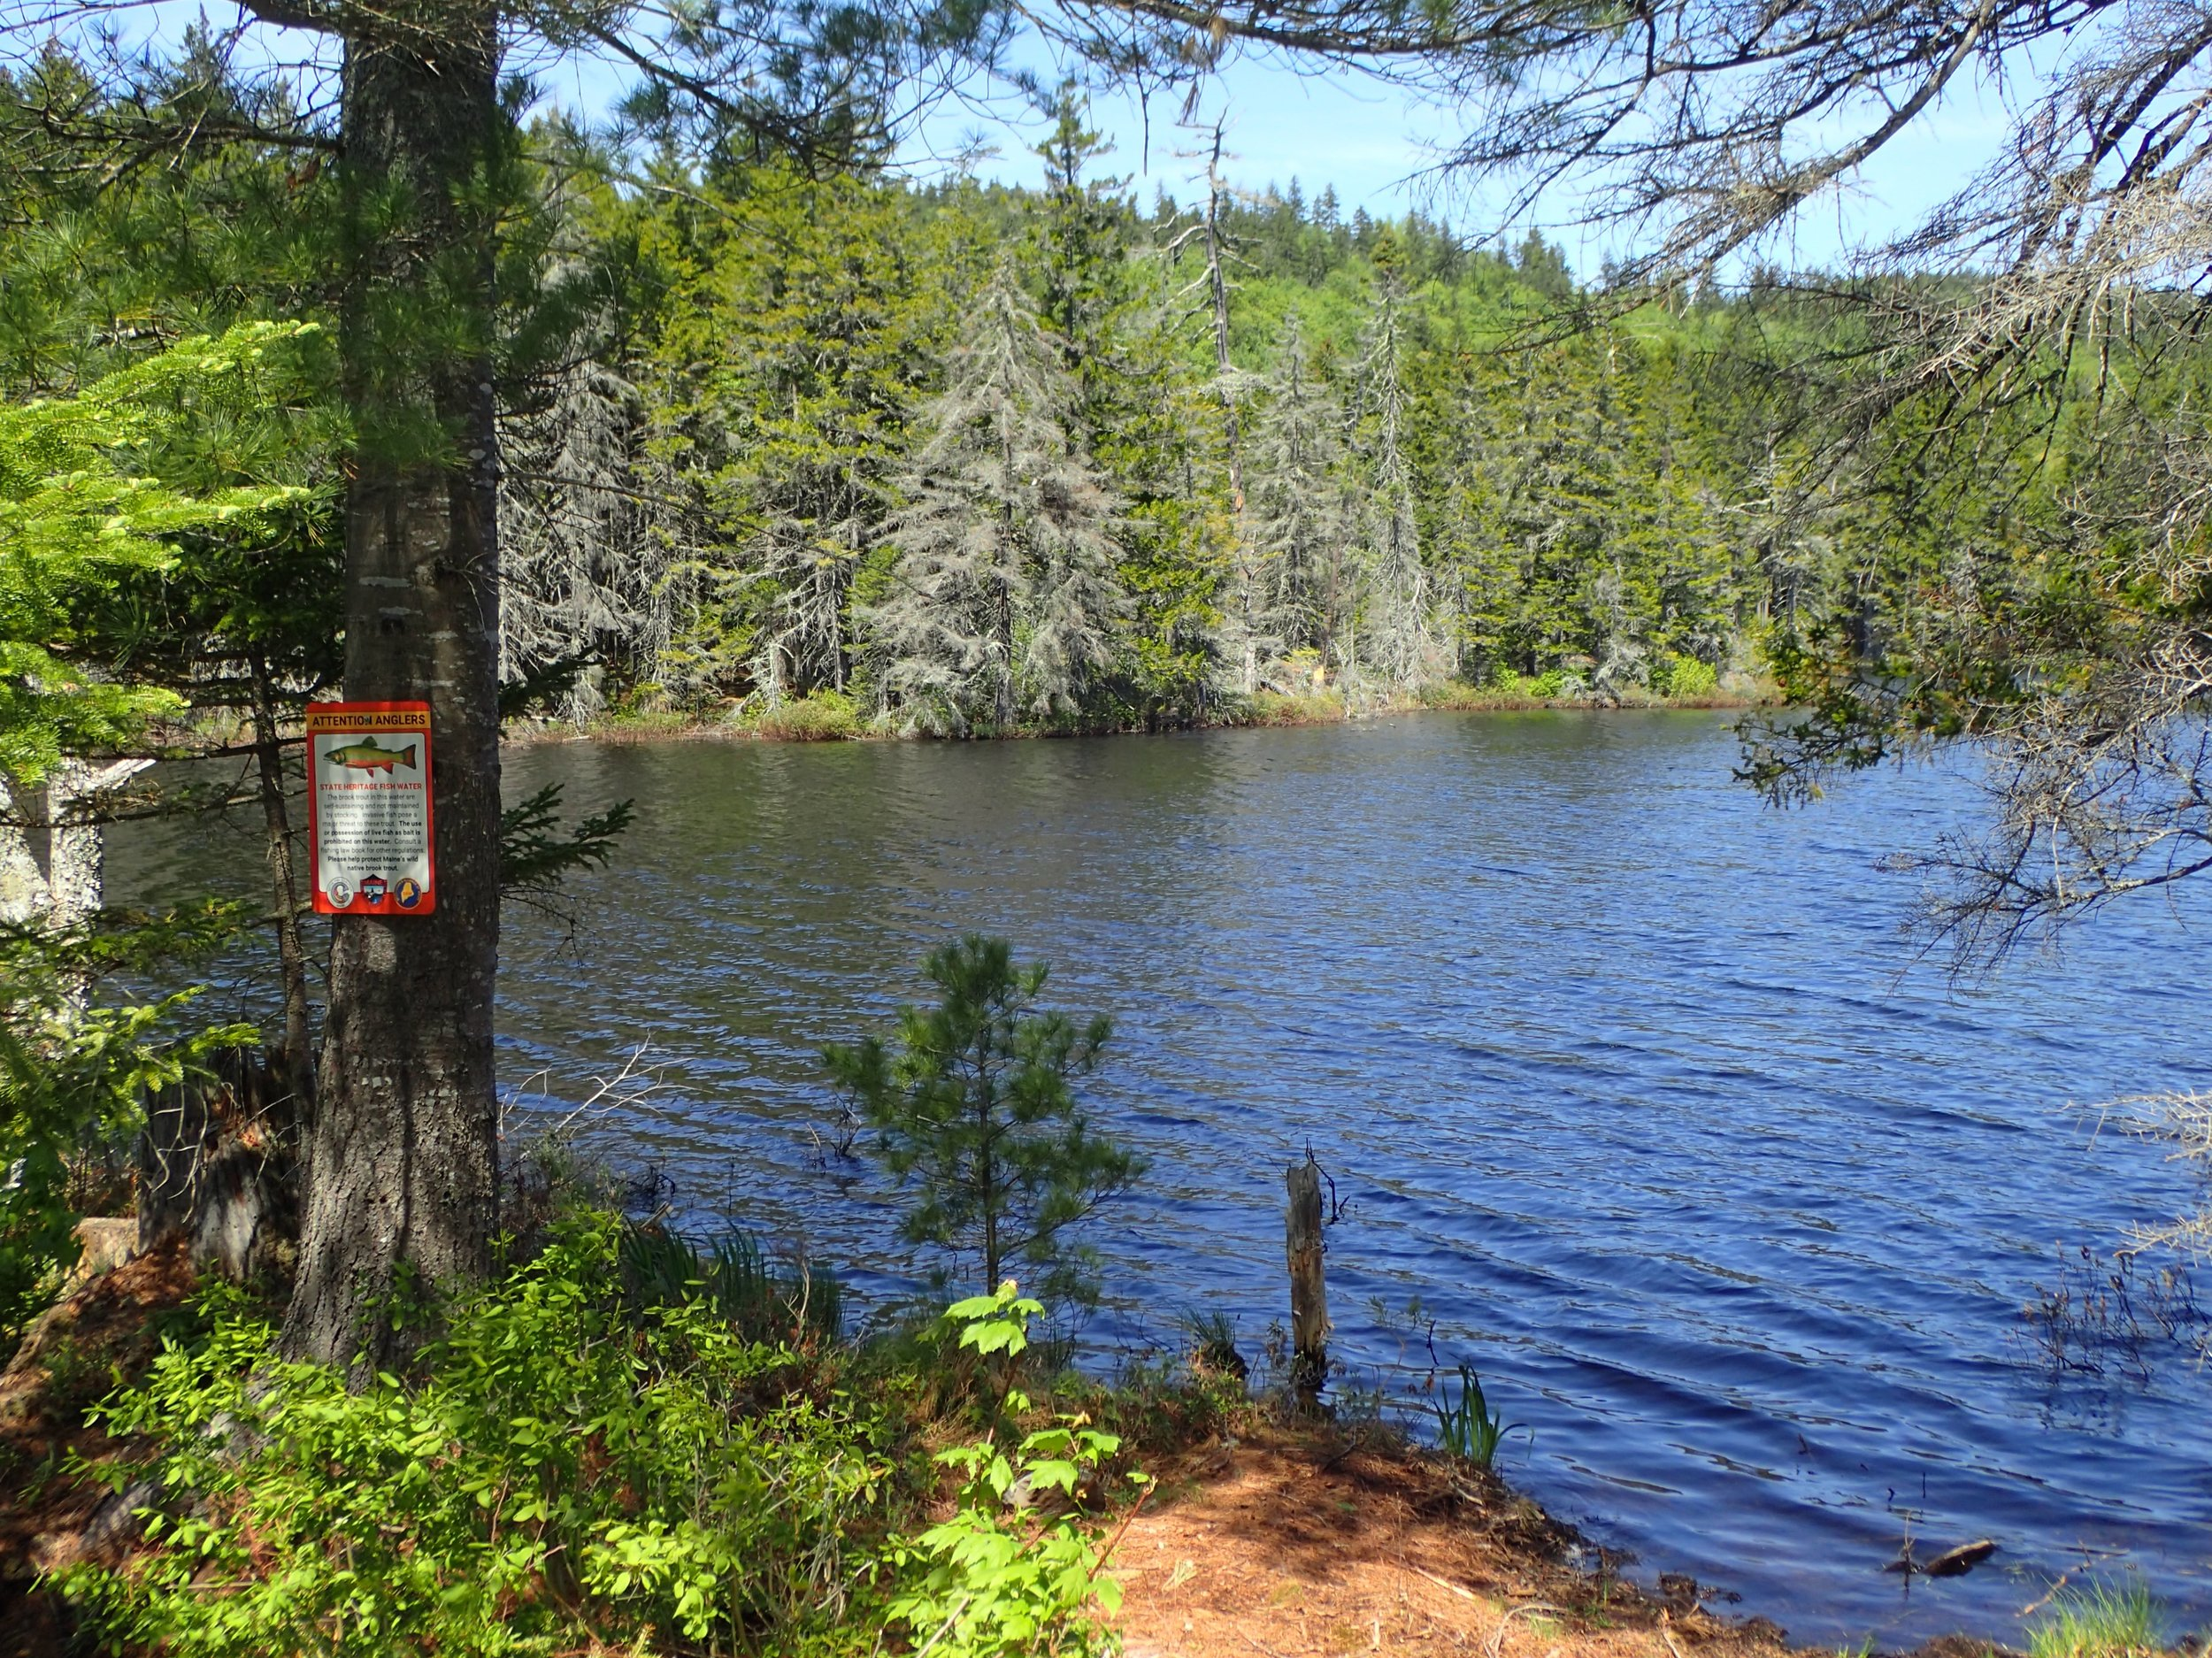 A remote State Heritage Fish pond in Somerset County, Maine.